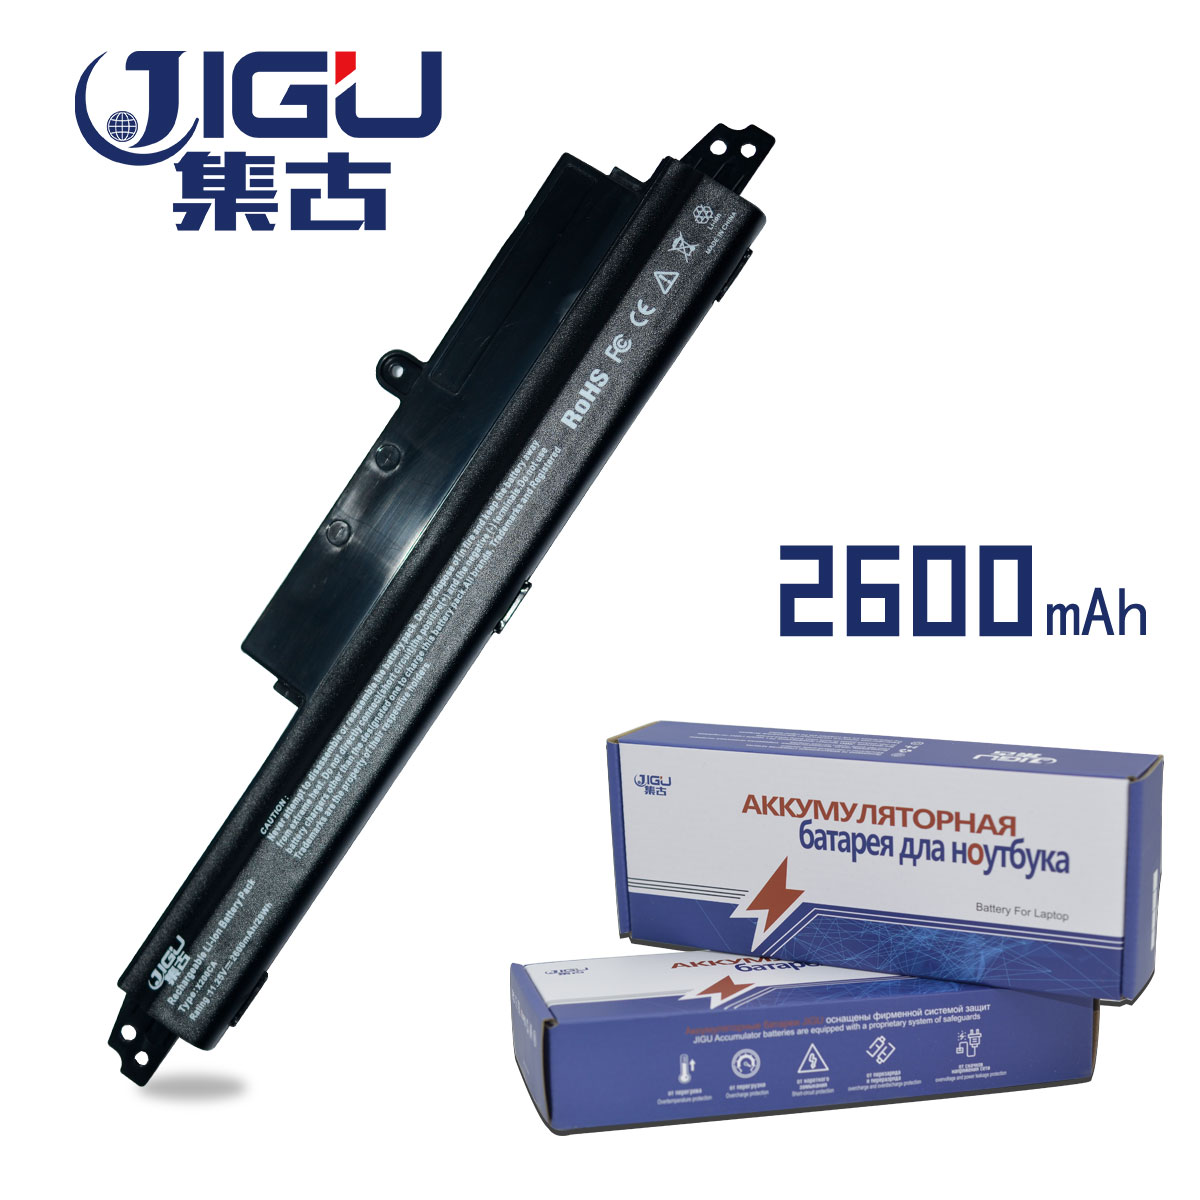 JIGU Laptop Battery A31LMH2 A31N1302 Battery For ASUS For VivoBook X200CA X200MA X200M X200LA F200CA 200CA 11.6